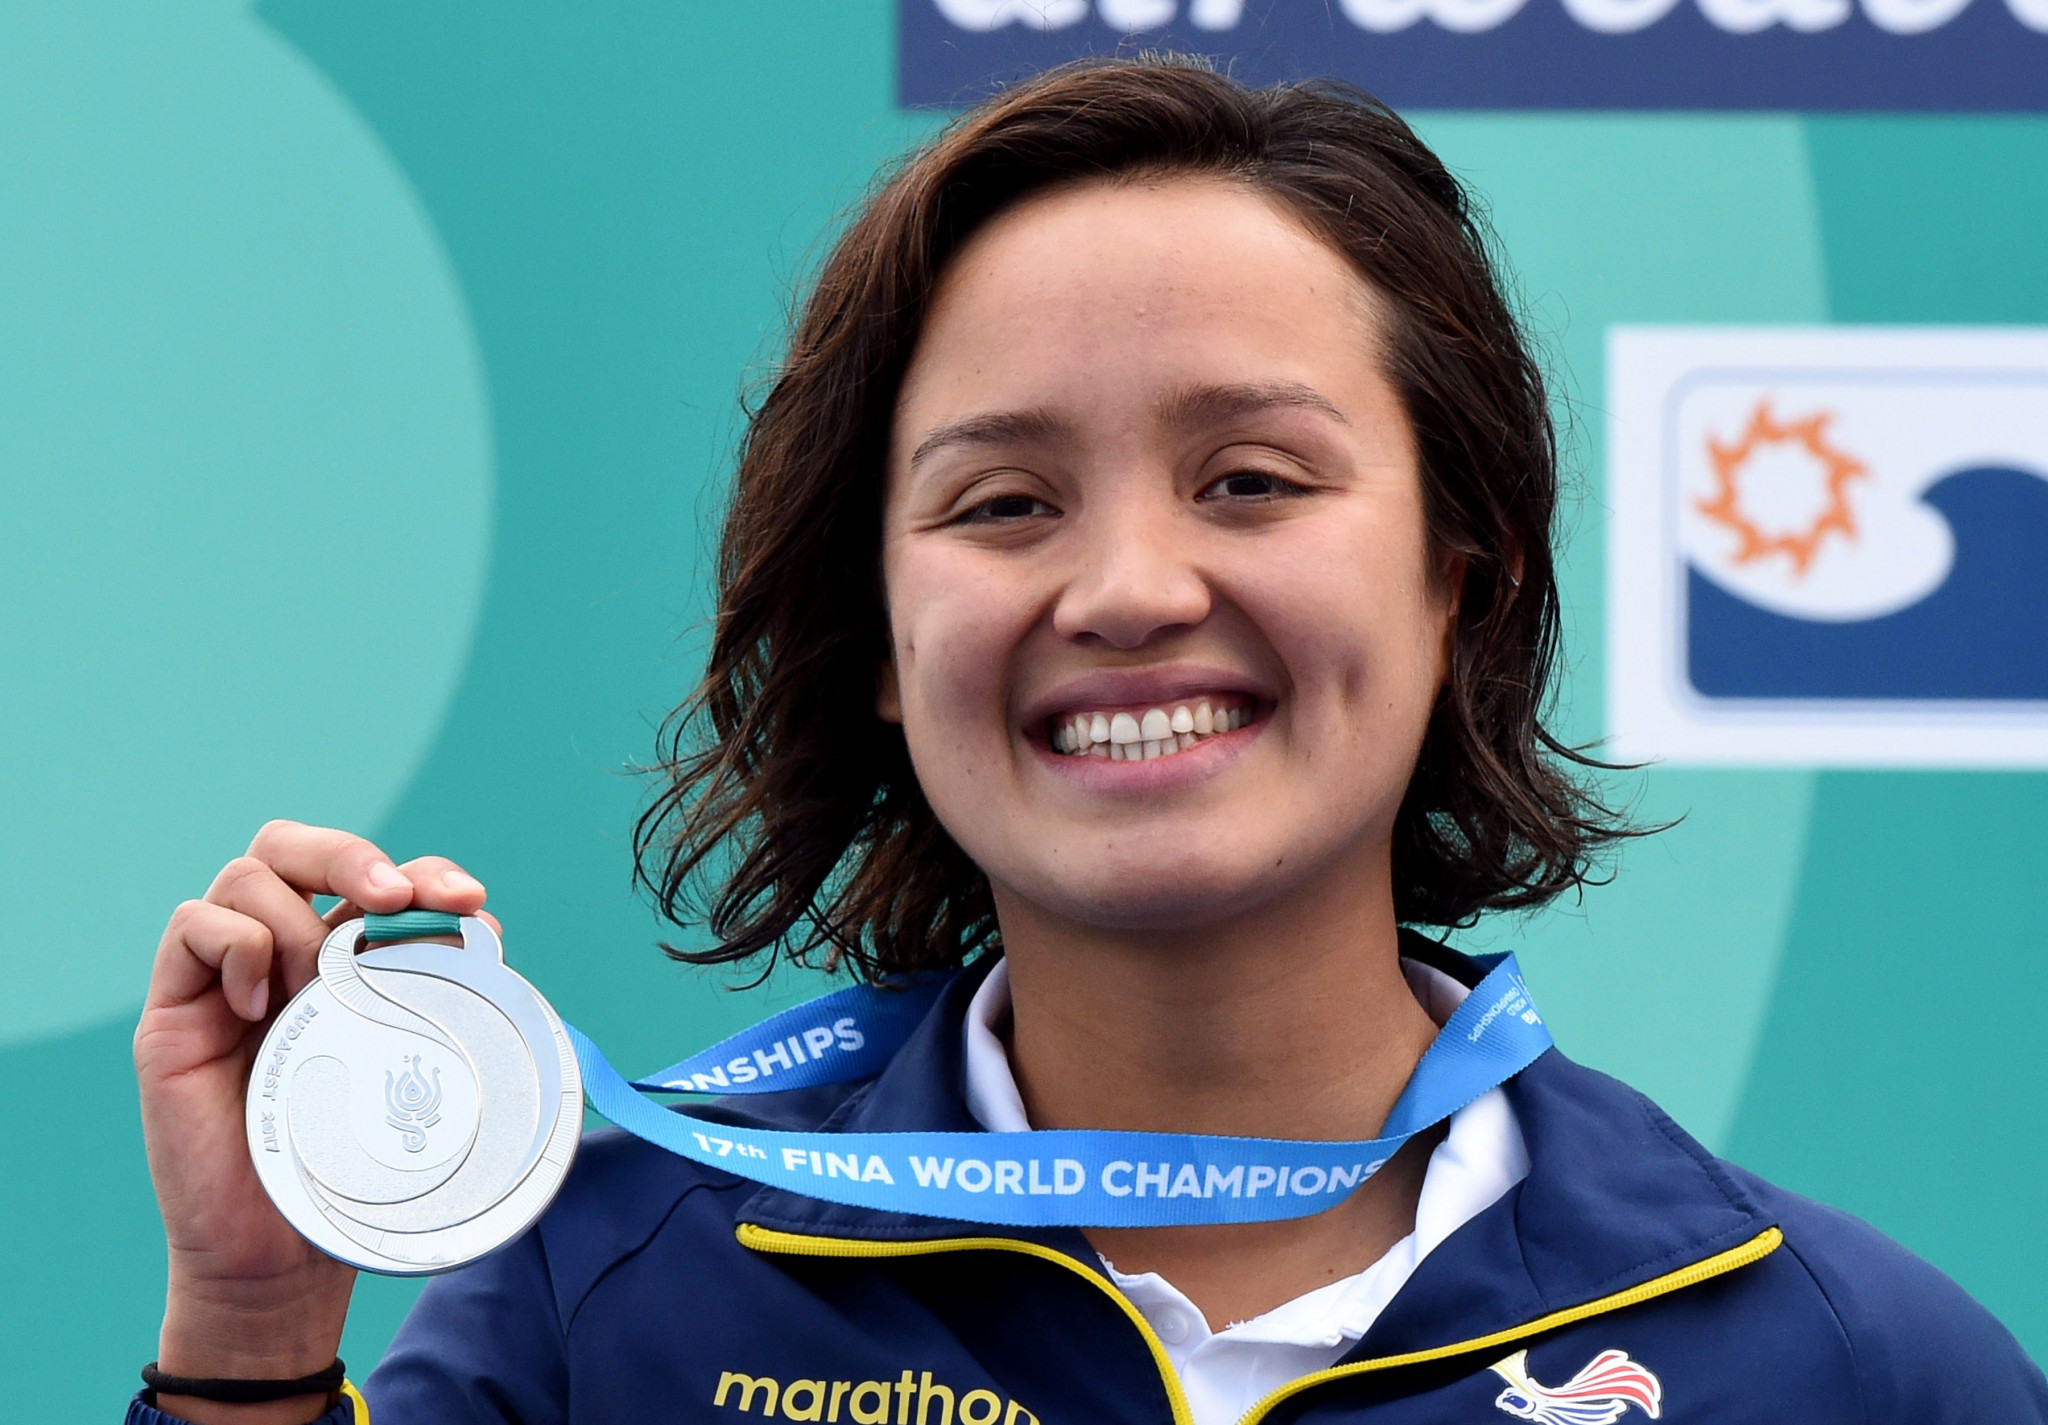 Samantha Arevalo Salinas from Ecuador, silver medallist at the 2017 World Championships, will be looking to disrupt the chances of Brazil's Ana Marcela Cunha ©FINA